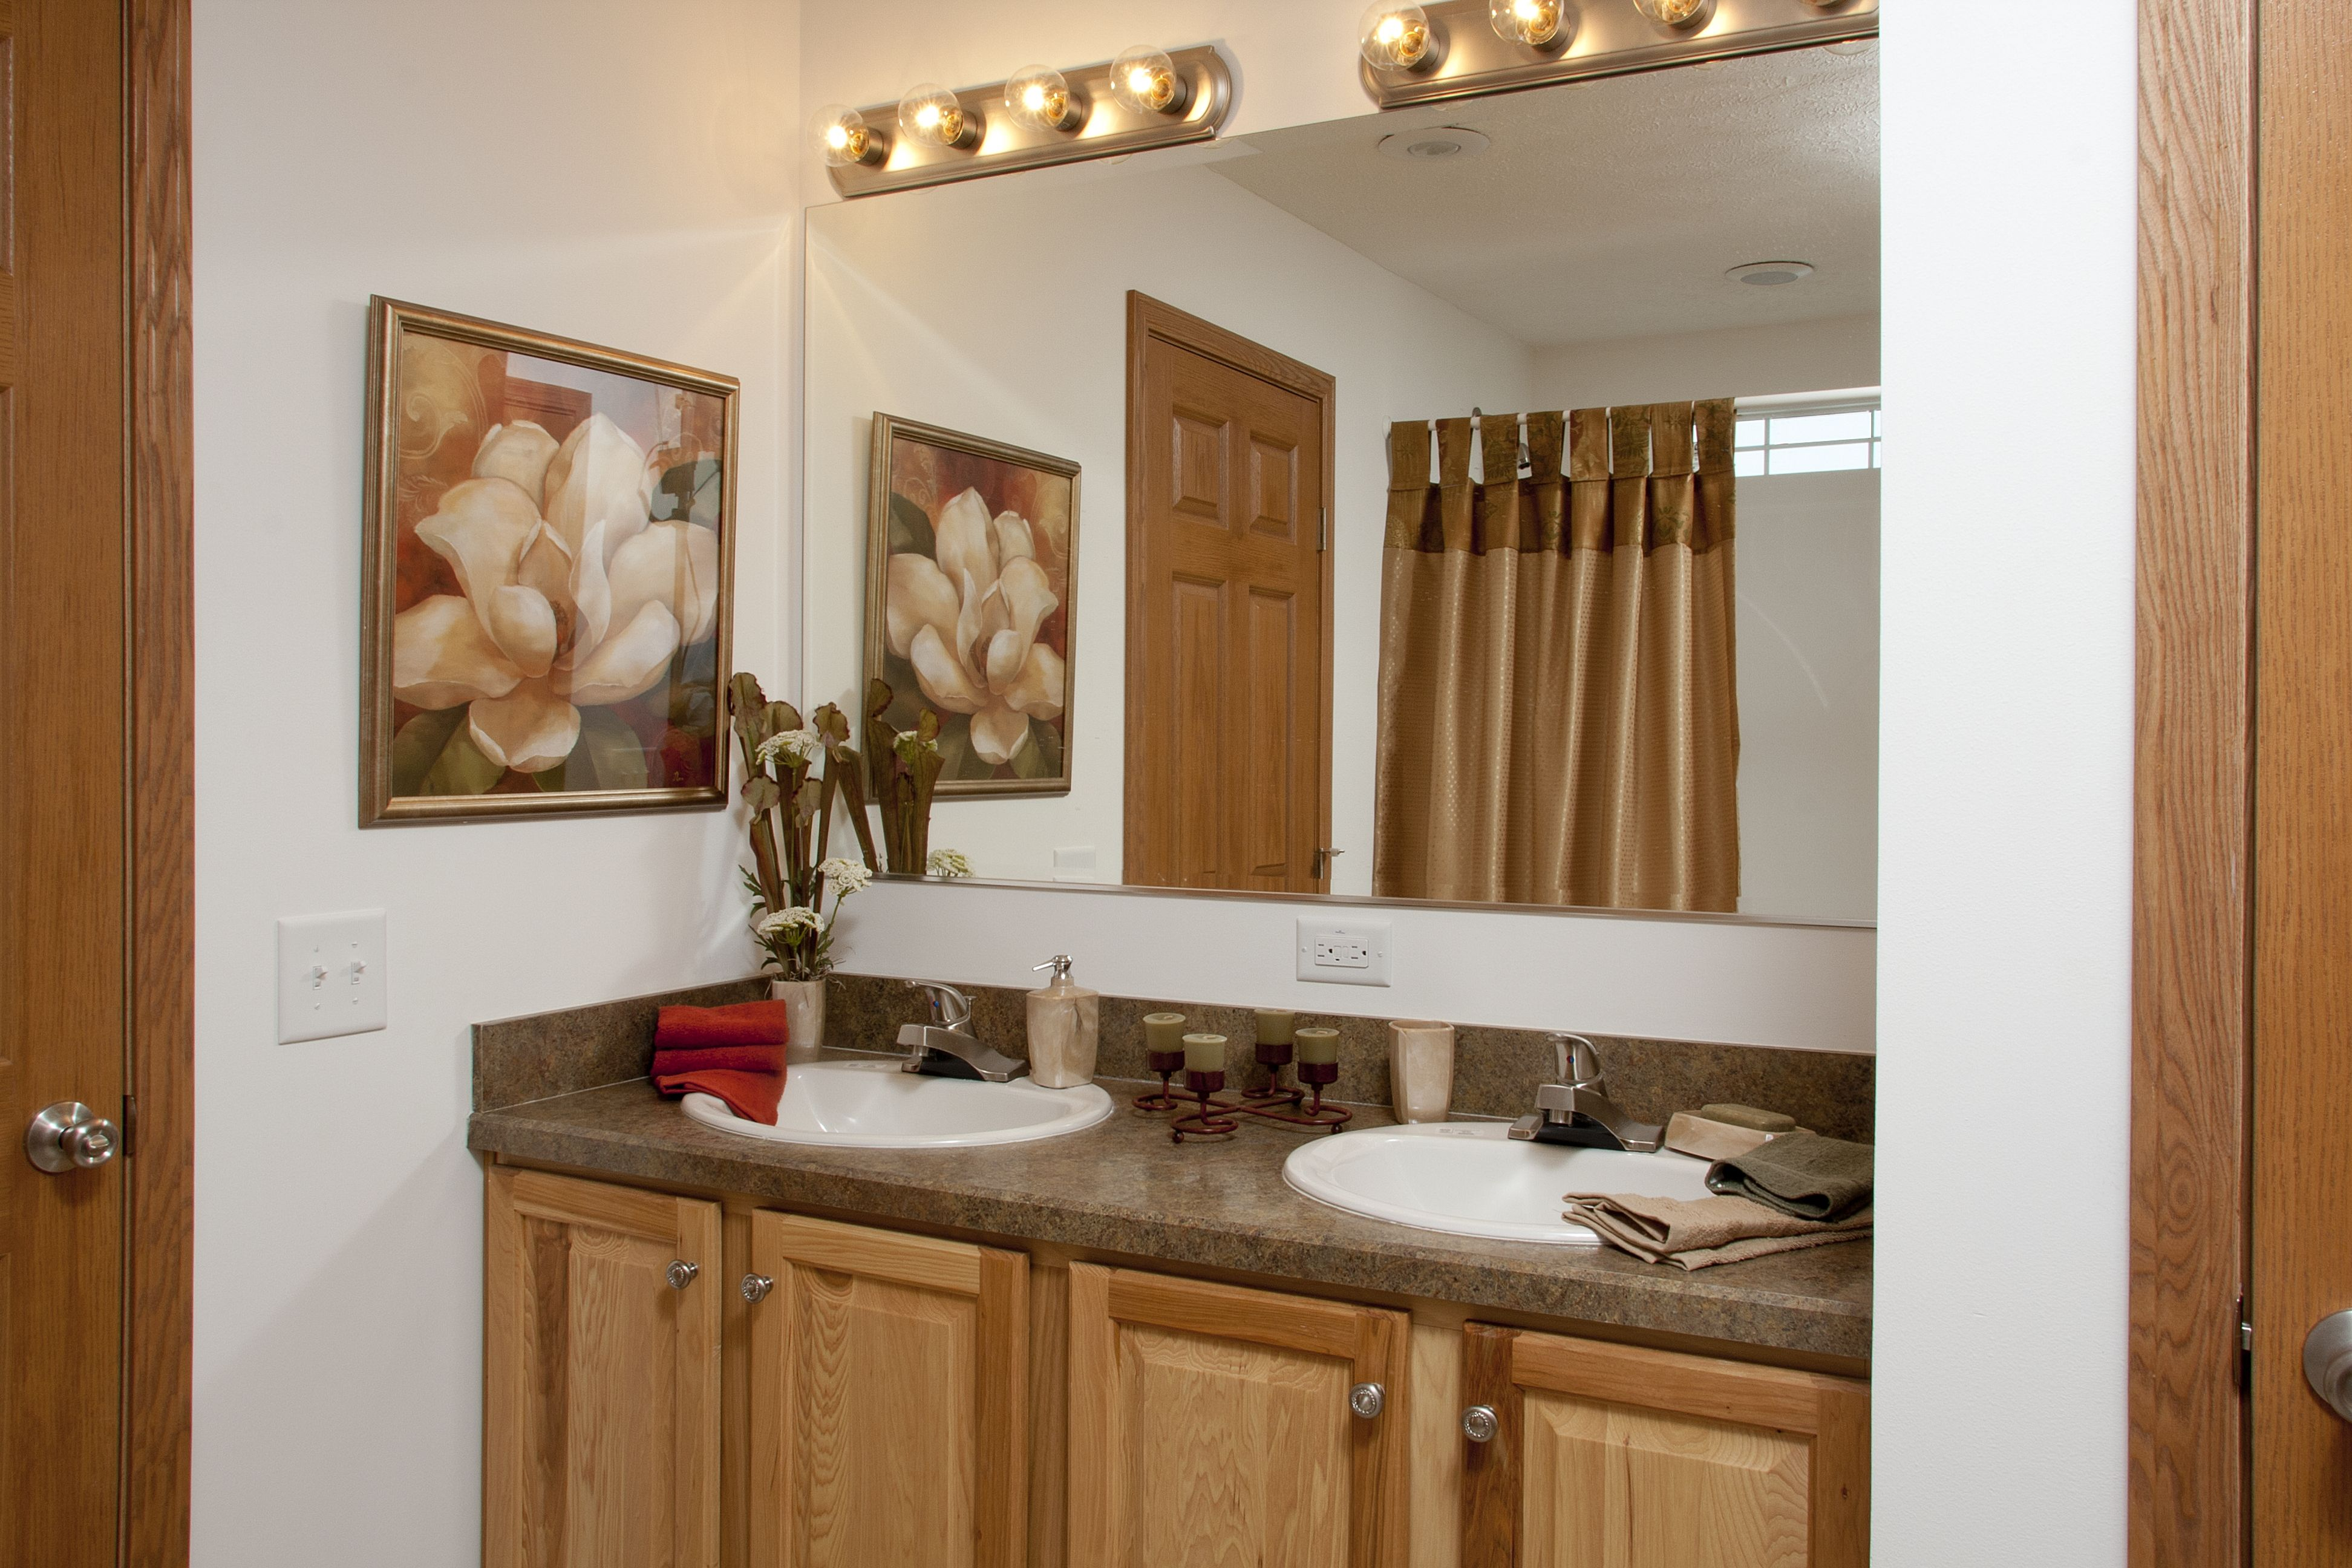 Mulberry Ii Rx838a Grandville Le Modular Ranch Master Bathroom With Double Sinks And Raised